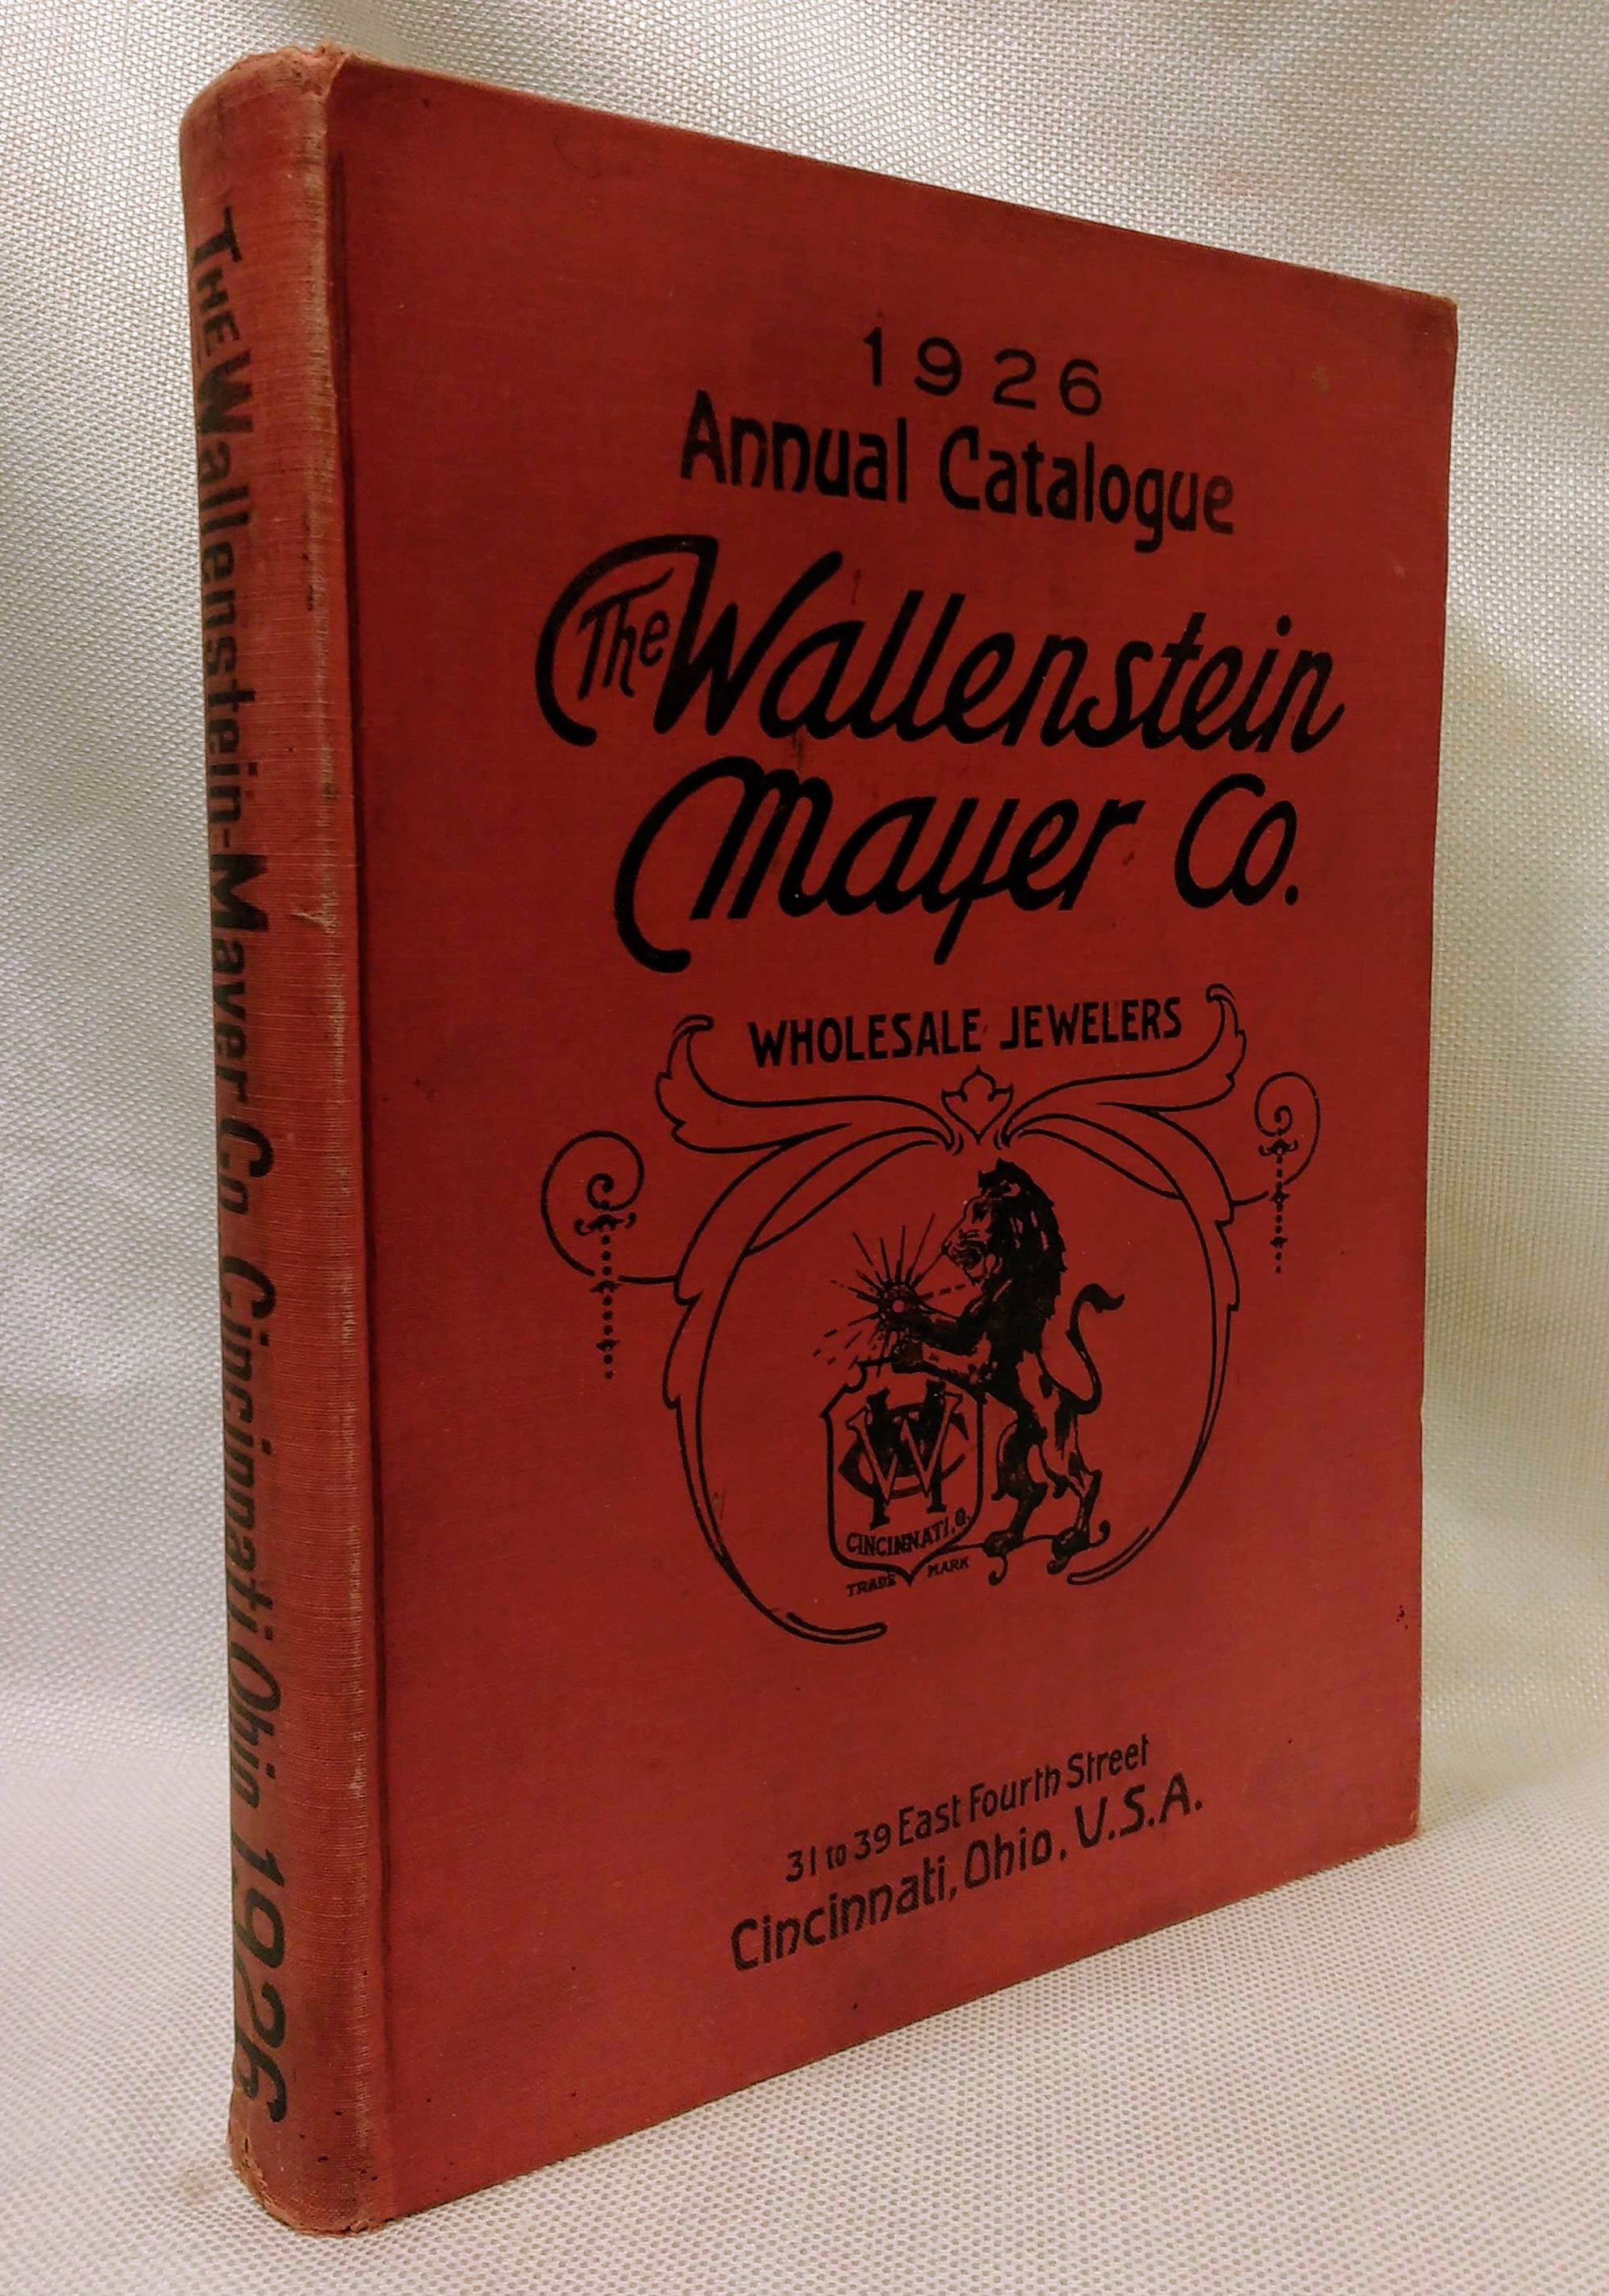 Wallenstein, Mayer & Co 1926 Annual Catalog (Wholesale Jewelers), Staff, Wallenstein, Mayer & Co